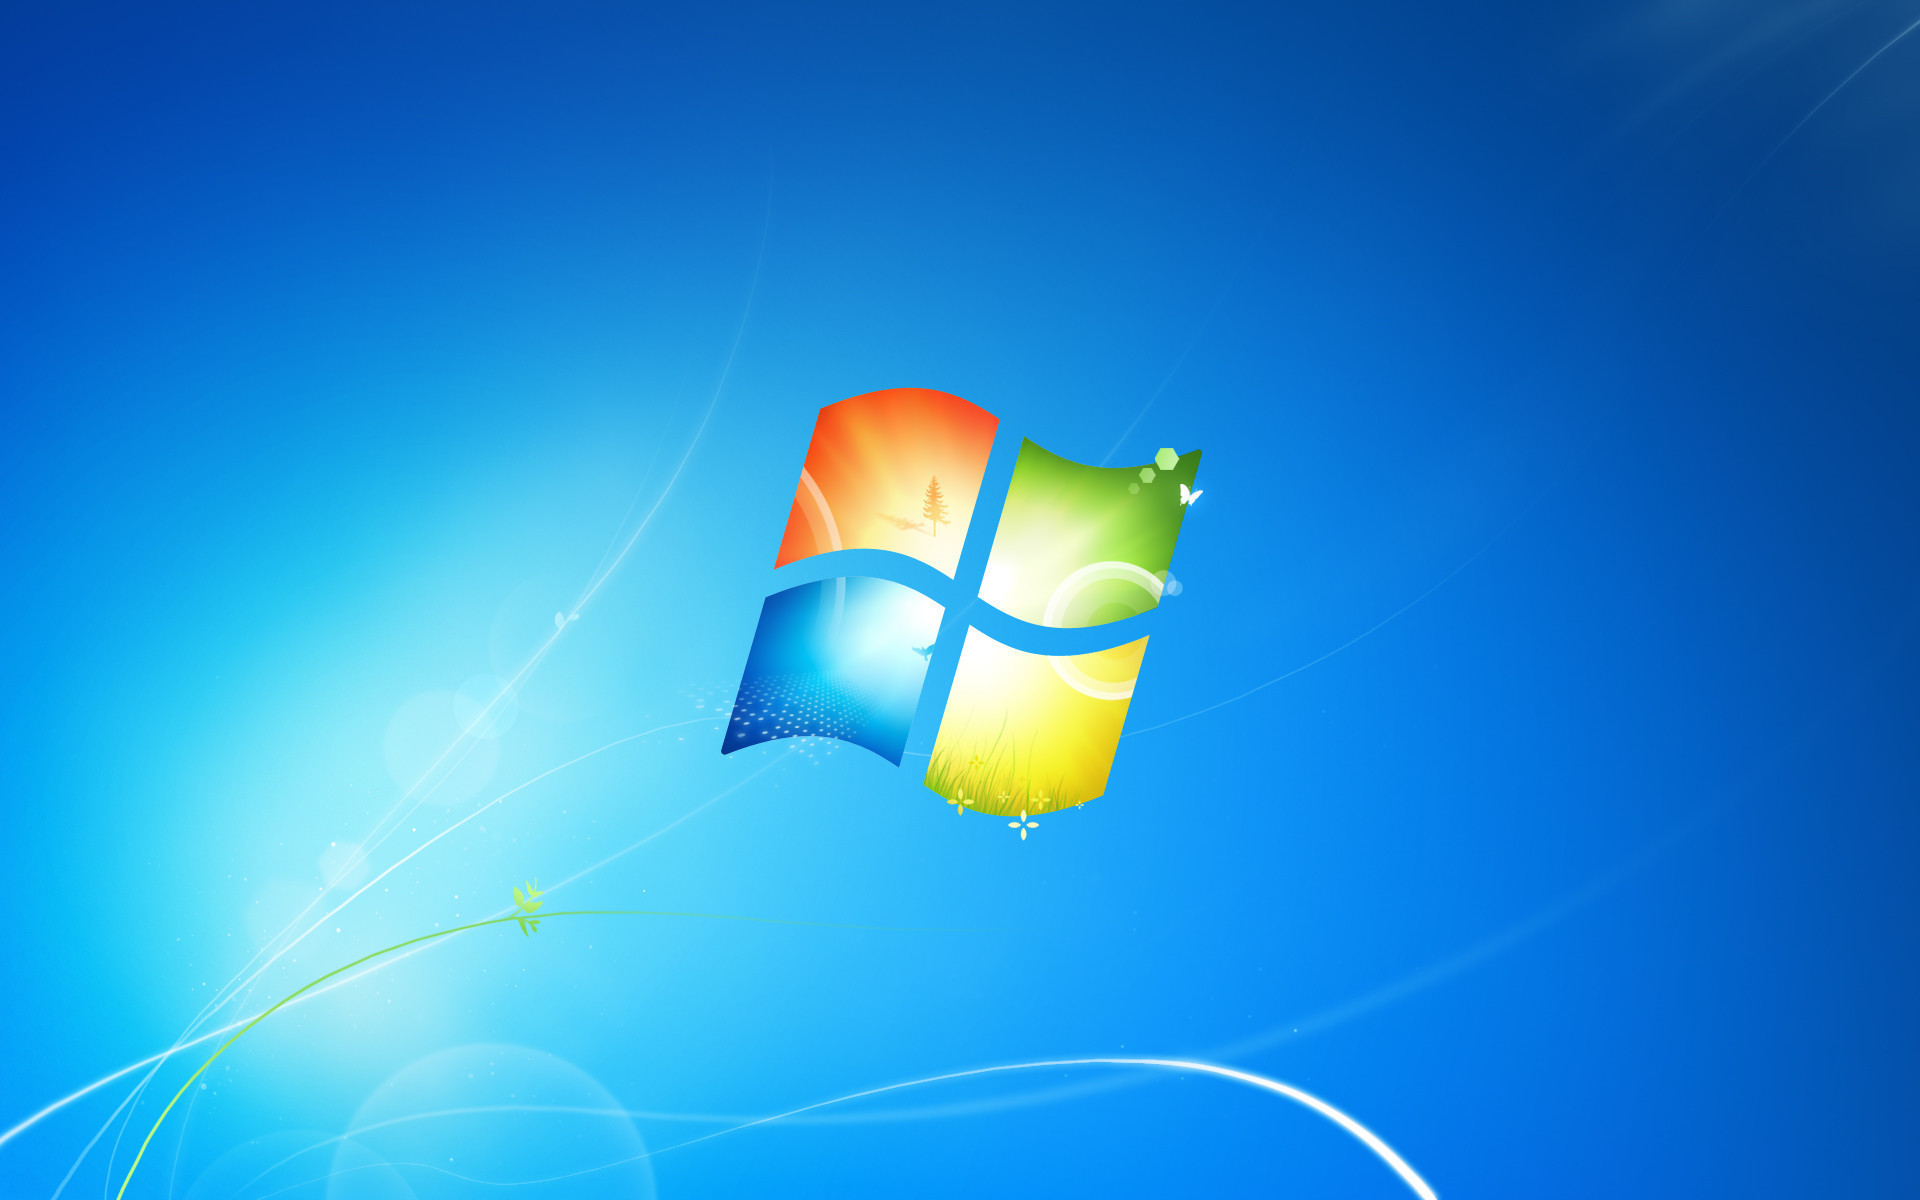 Microsoft will end support for Windows 7 within a year